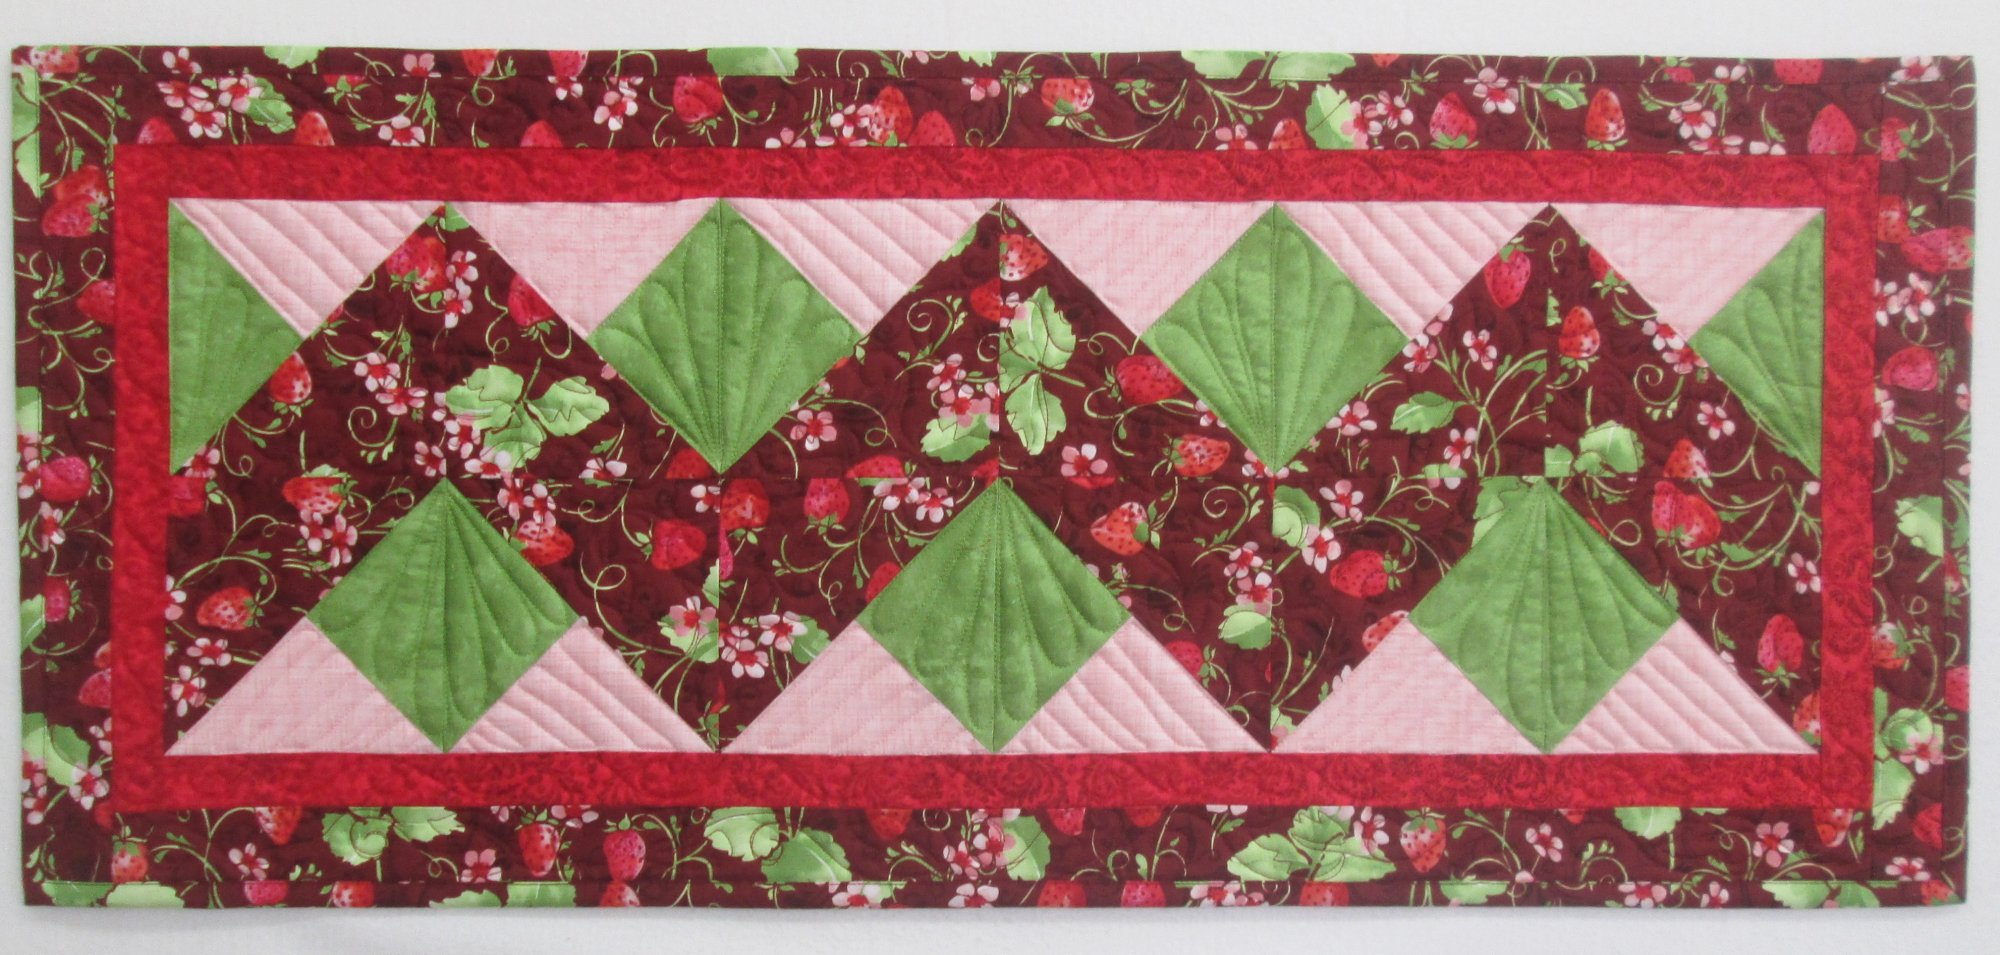 Sugar Berry Double Chevron Table Runner Kit 15 x 35 includes binding & pattern